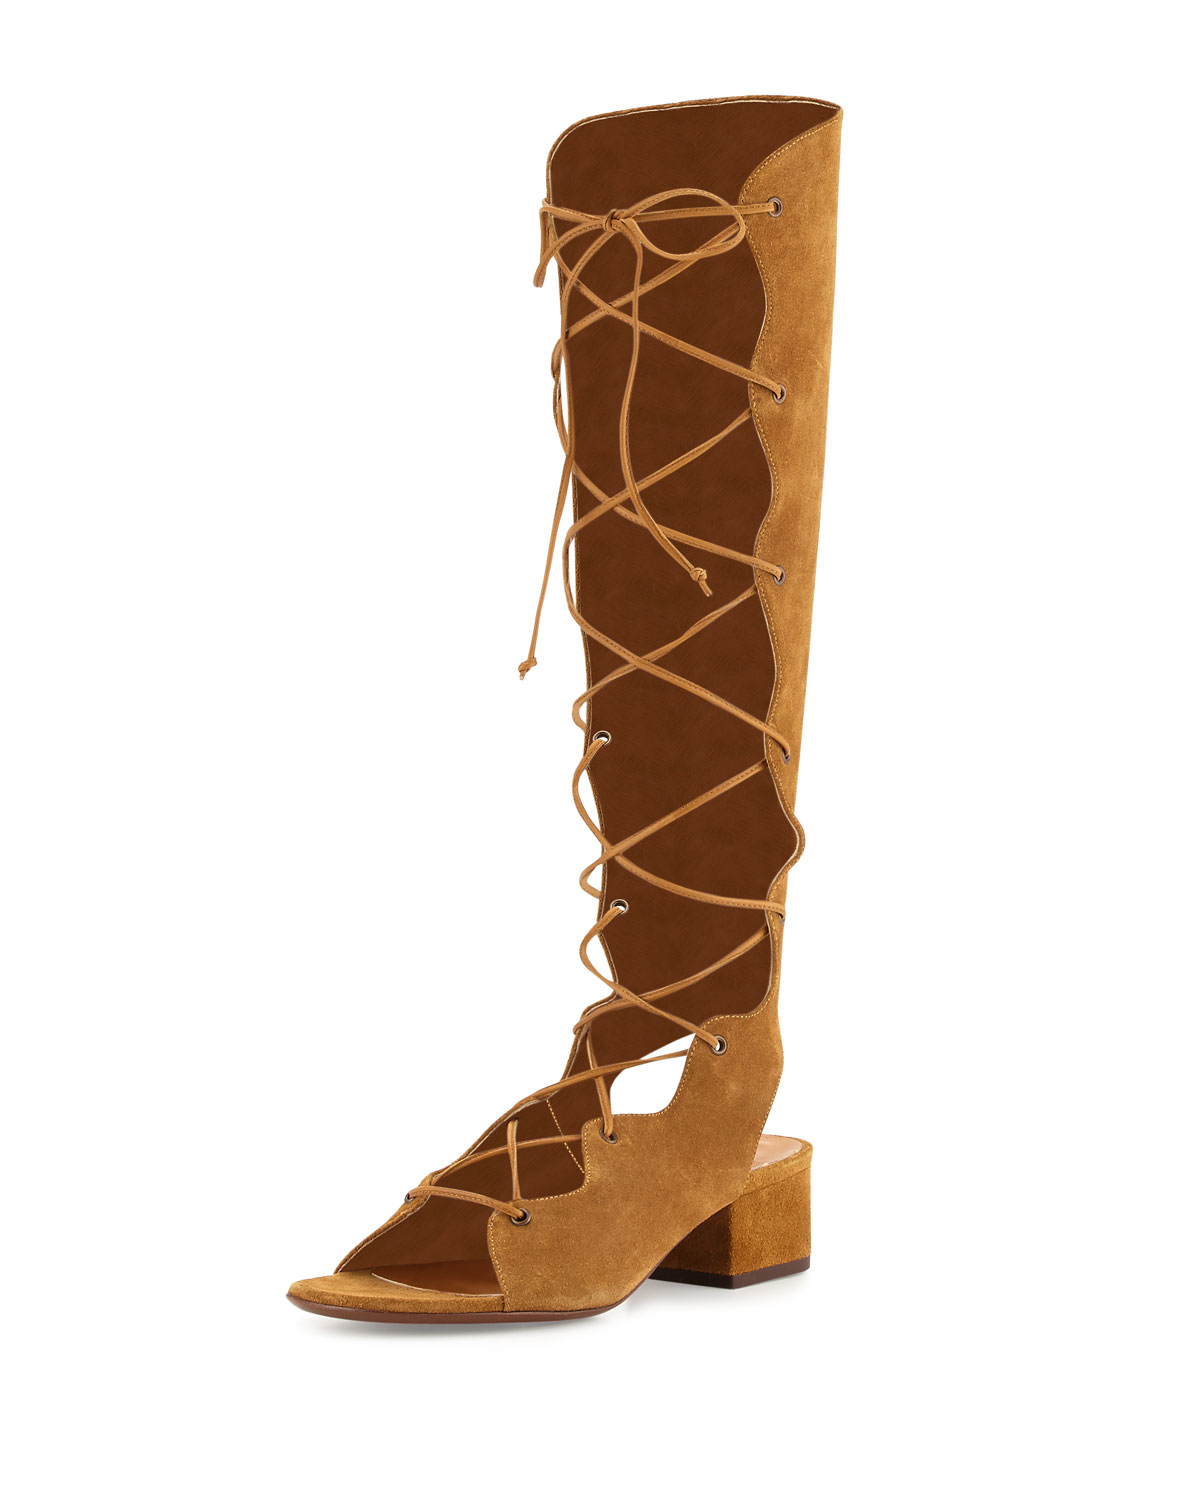 a0ca5d291cf4 Lyst - Saint Laurent Babies Suede Knee-High Gladiator Boots in Brown